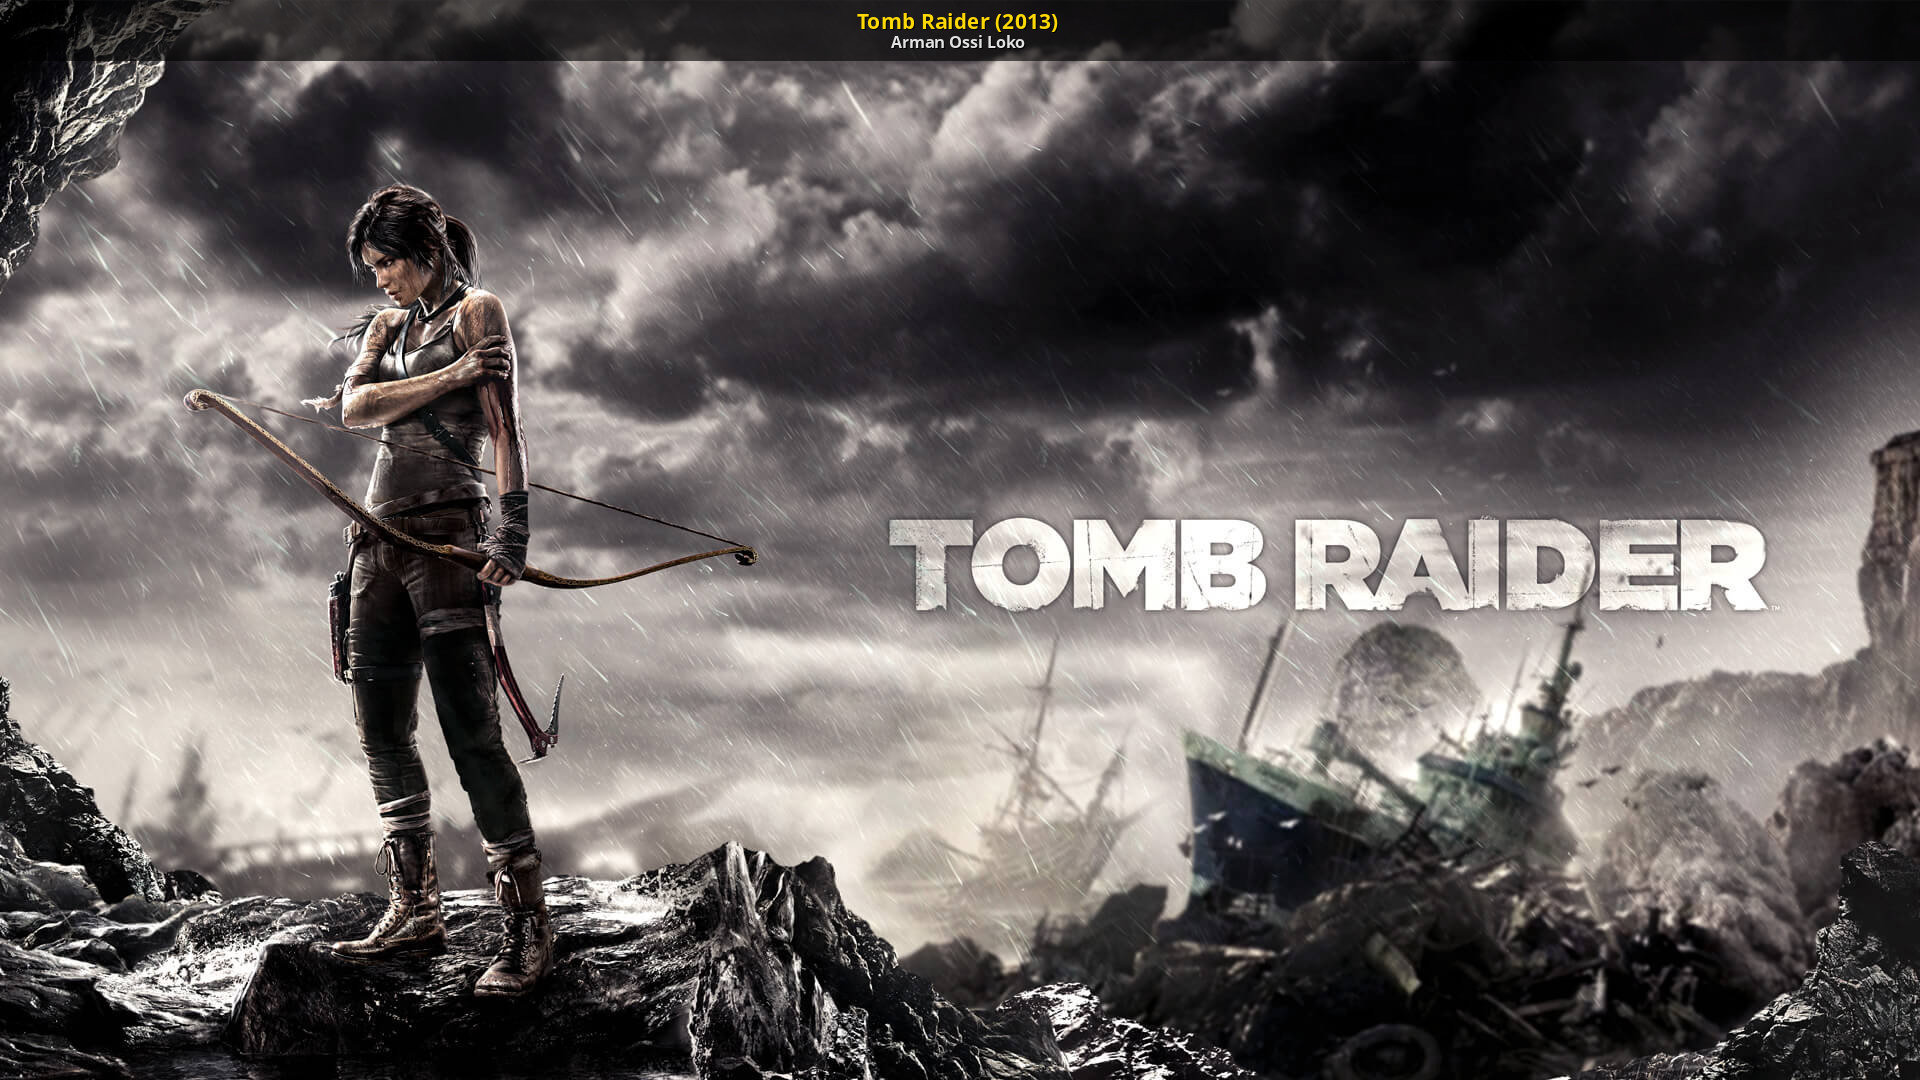 Tomb Raider 2013 Reviews